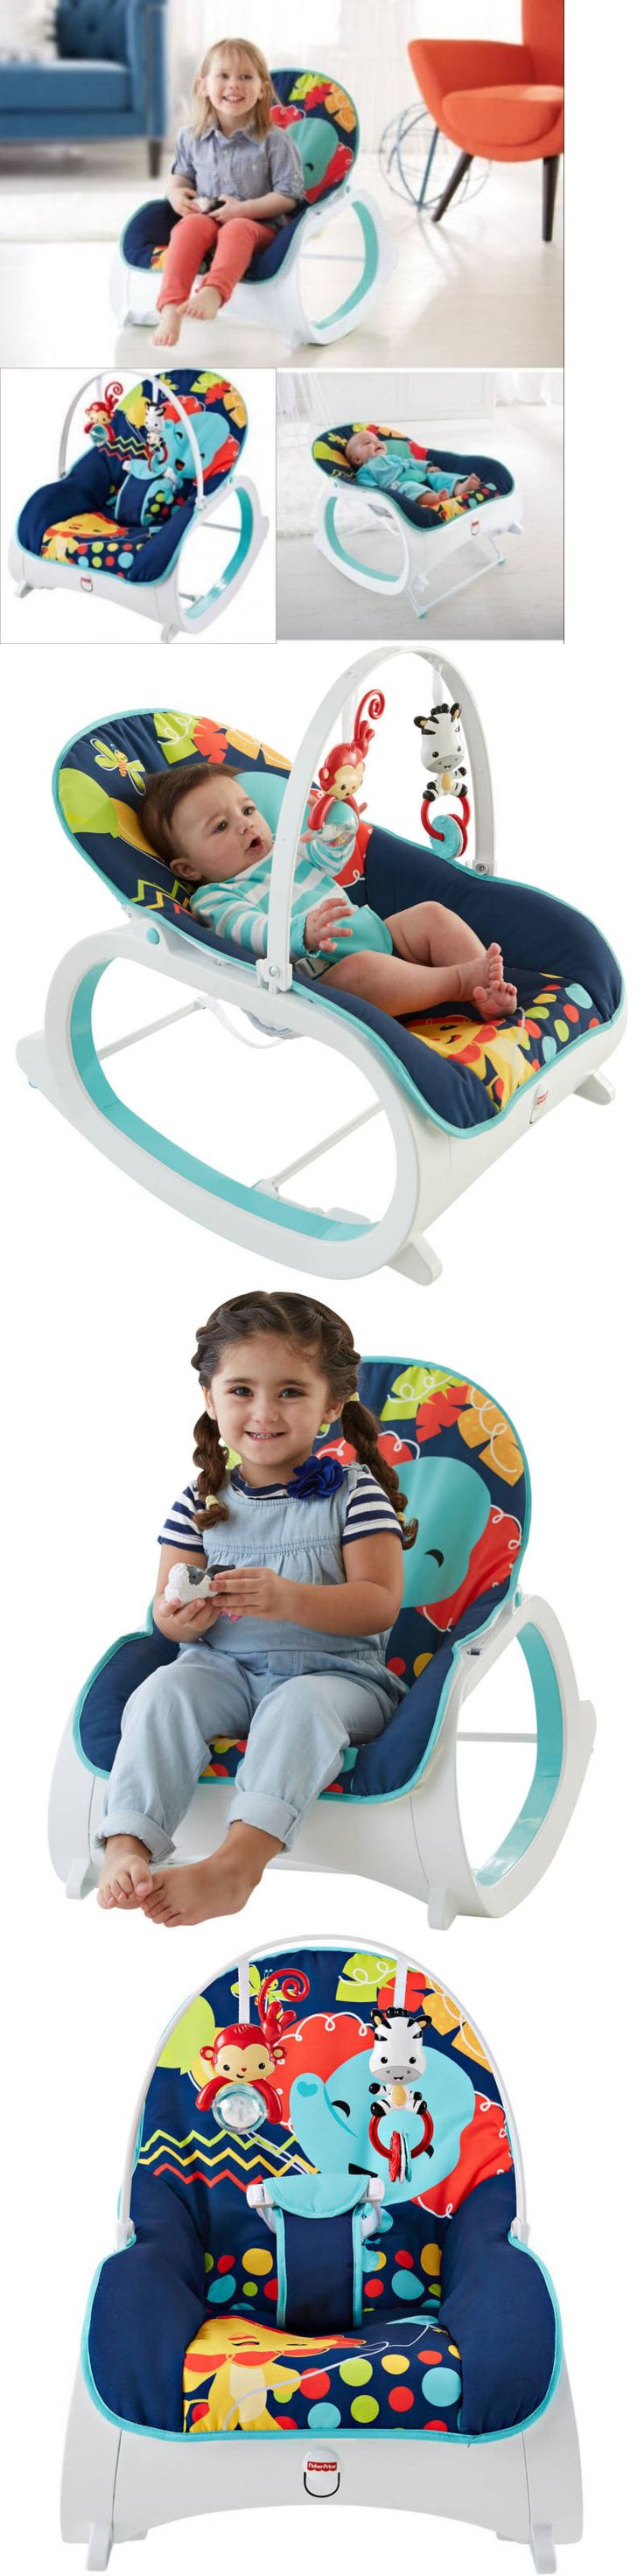 baby kid stuff: Baby Bouncer 2 In 1 Infant Toddler Rocker Soft Sleeper Chair Toy Bar Play Seat BUY IT NOW ONLY: $55.91